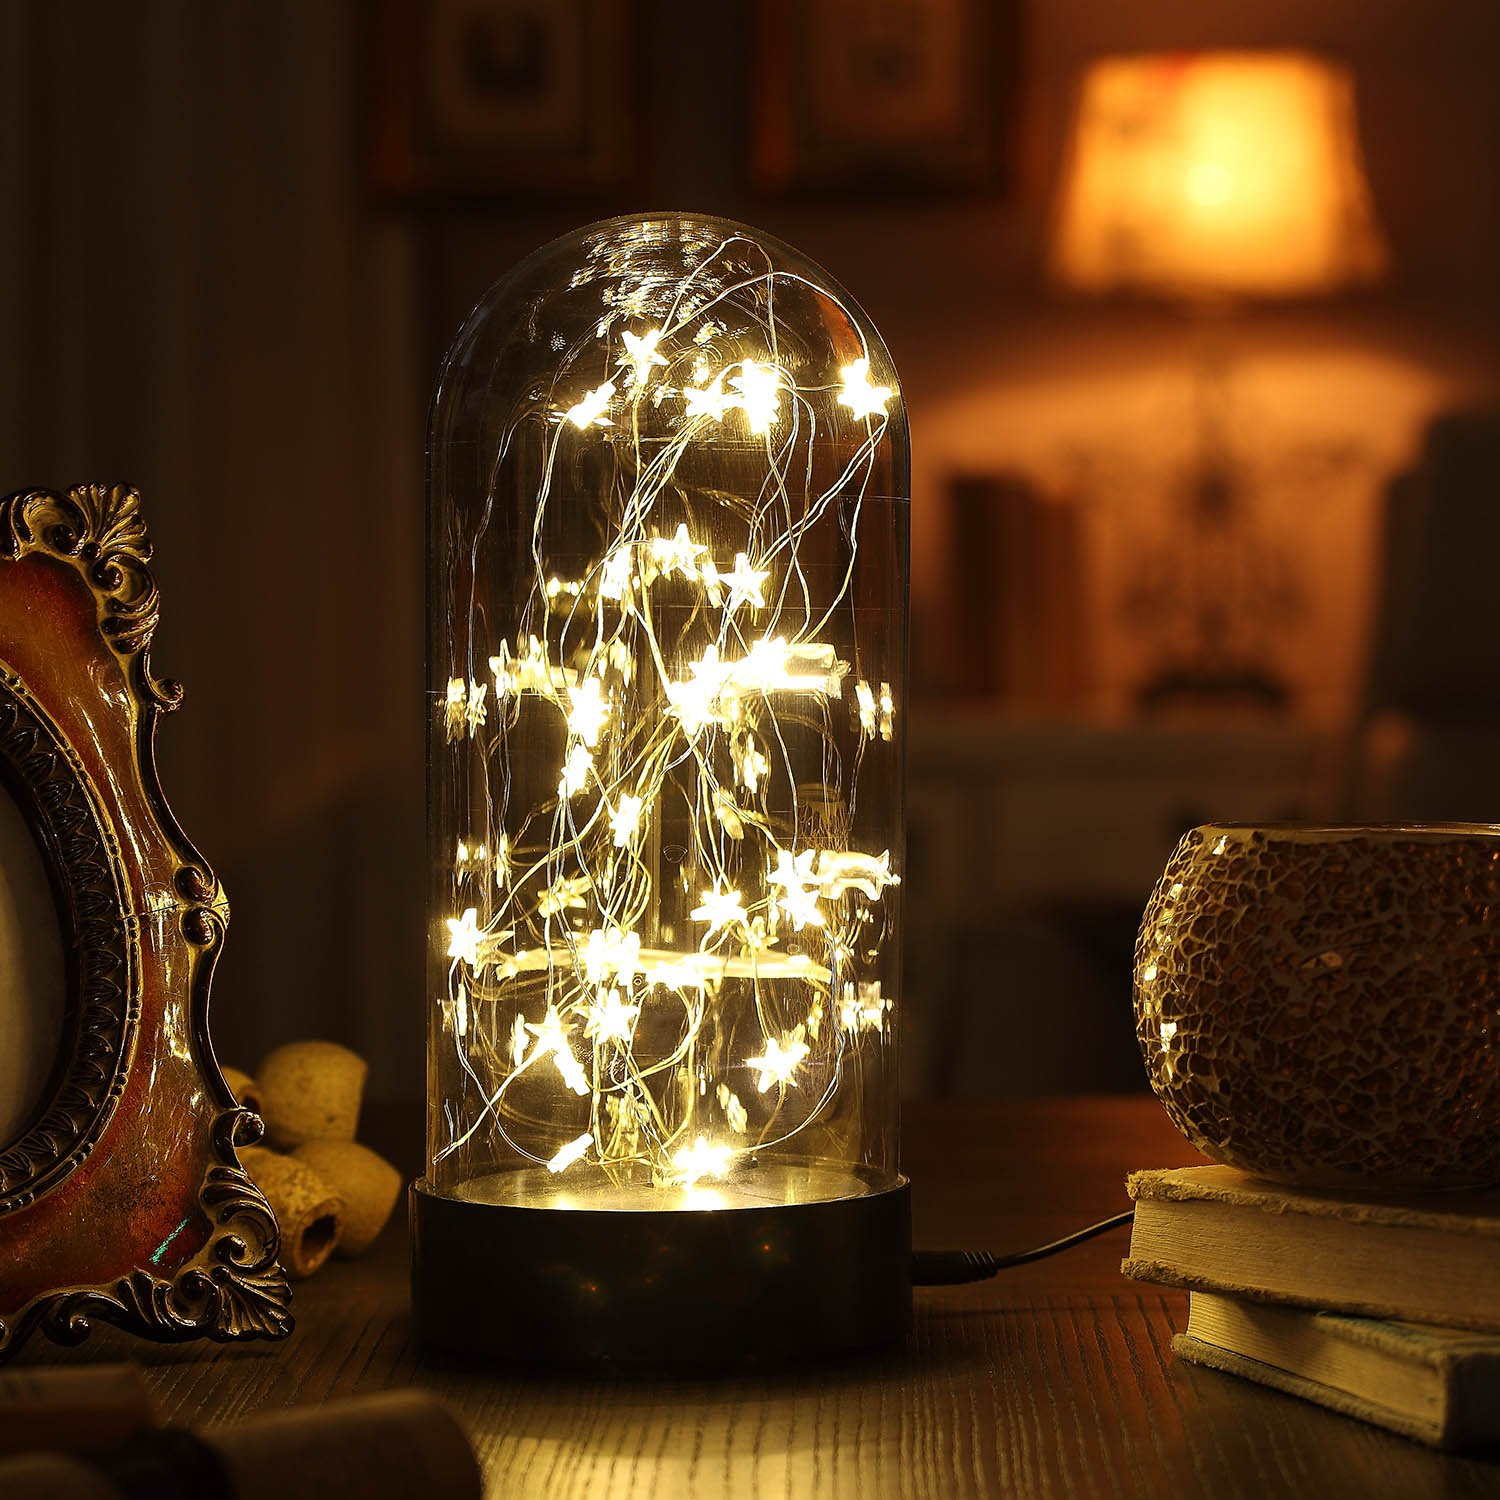 Decorative Fairy Night Light, XY Decor 11'' Dual Power Operated Table/Desk Lamp with Warm White Star String Lights Inside for Home Decor and Holiday Decoration.